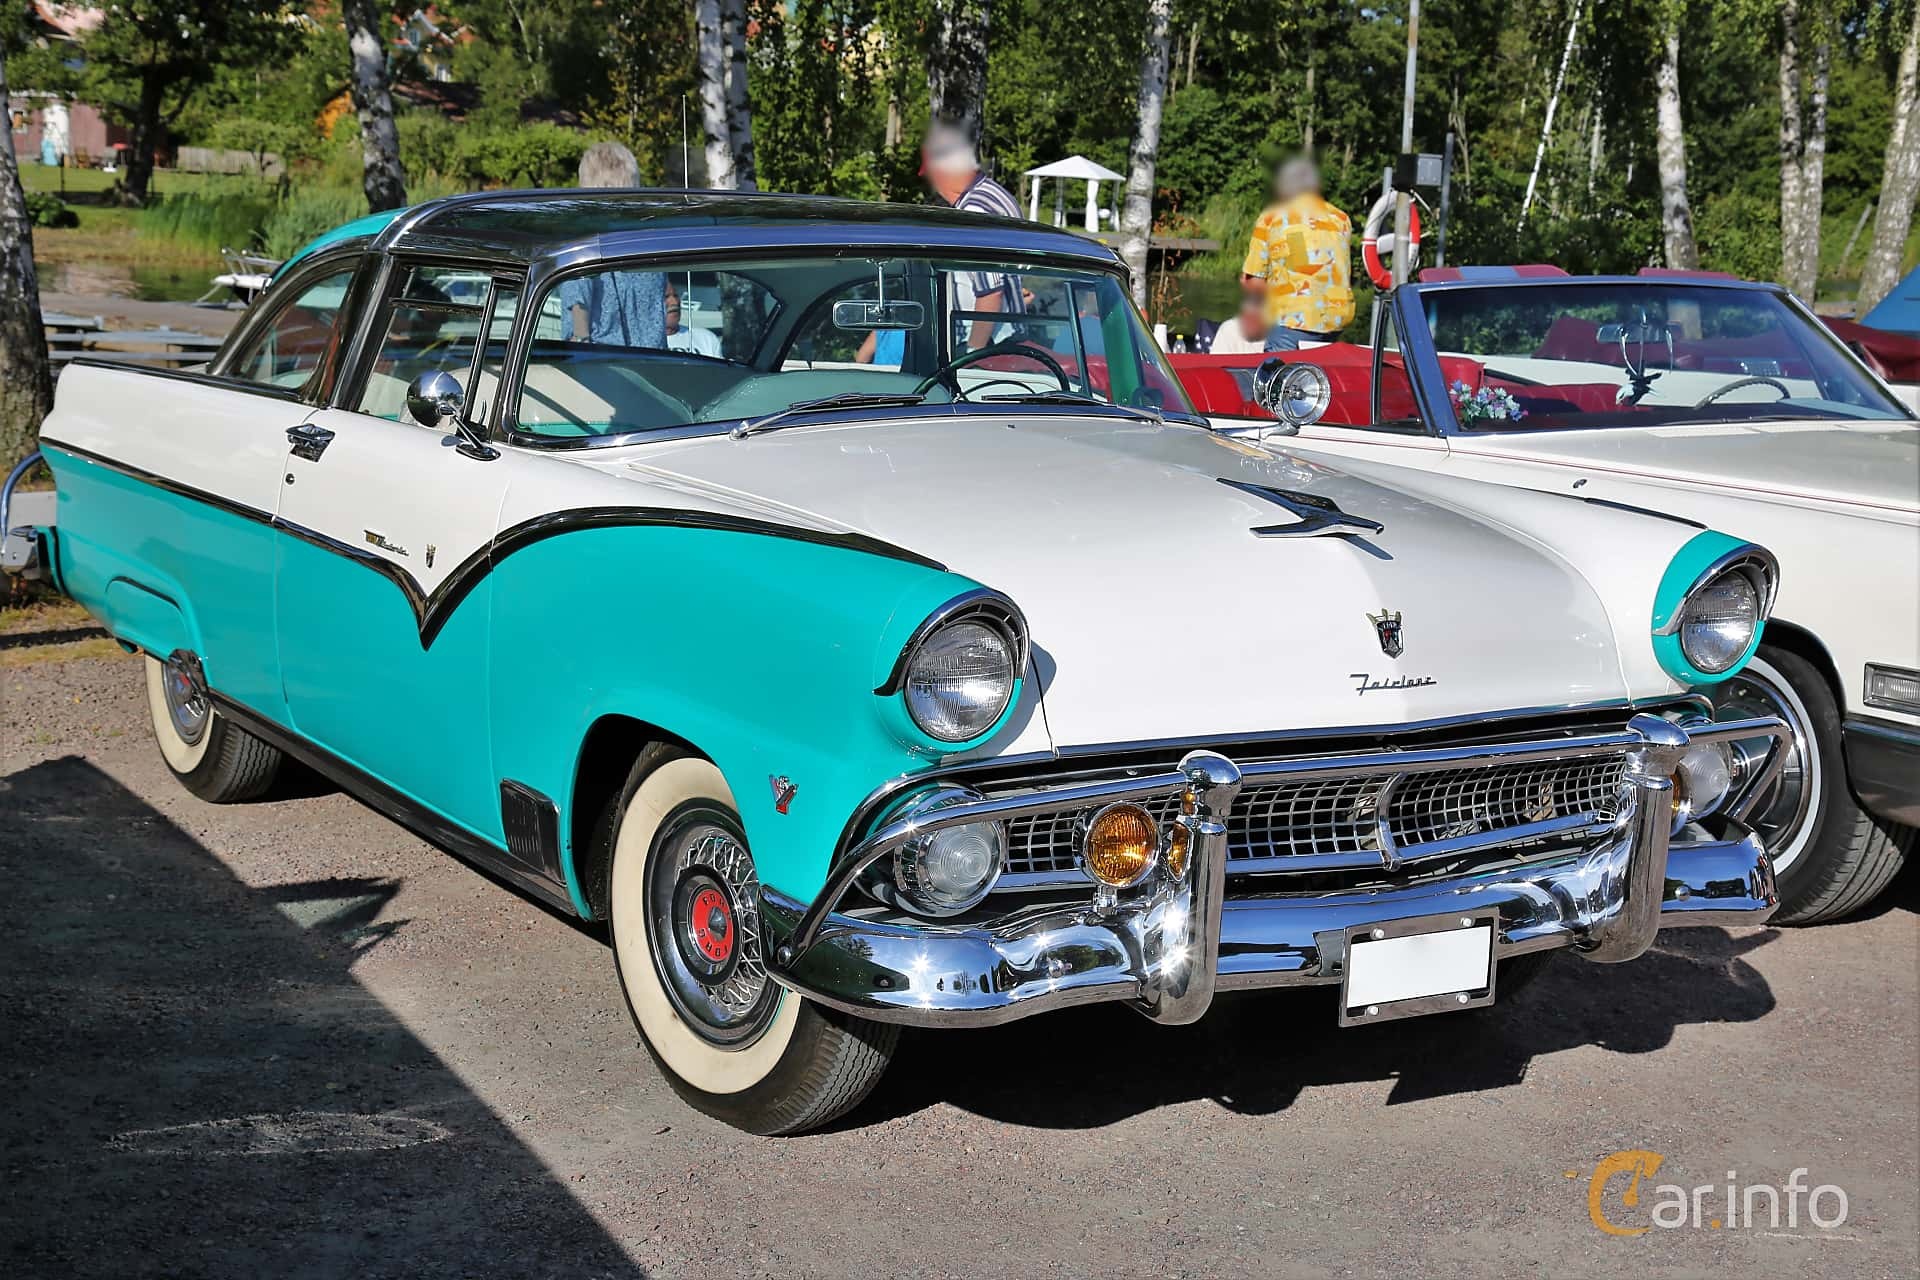 Ford Fairlane Crown Victoria Skyliner 4.5 V8 Automatic, 165hp, 1955 at KungälvsCruisingen 2017